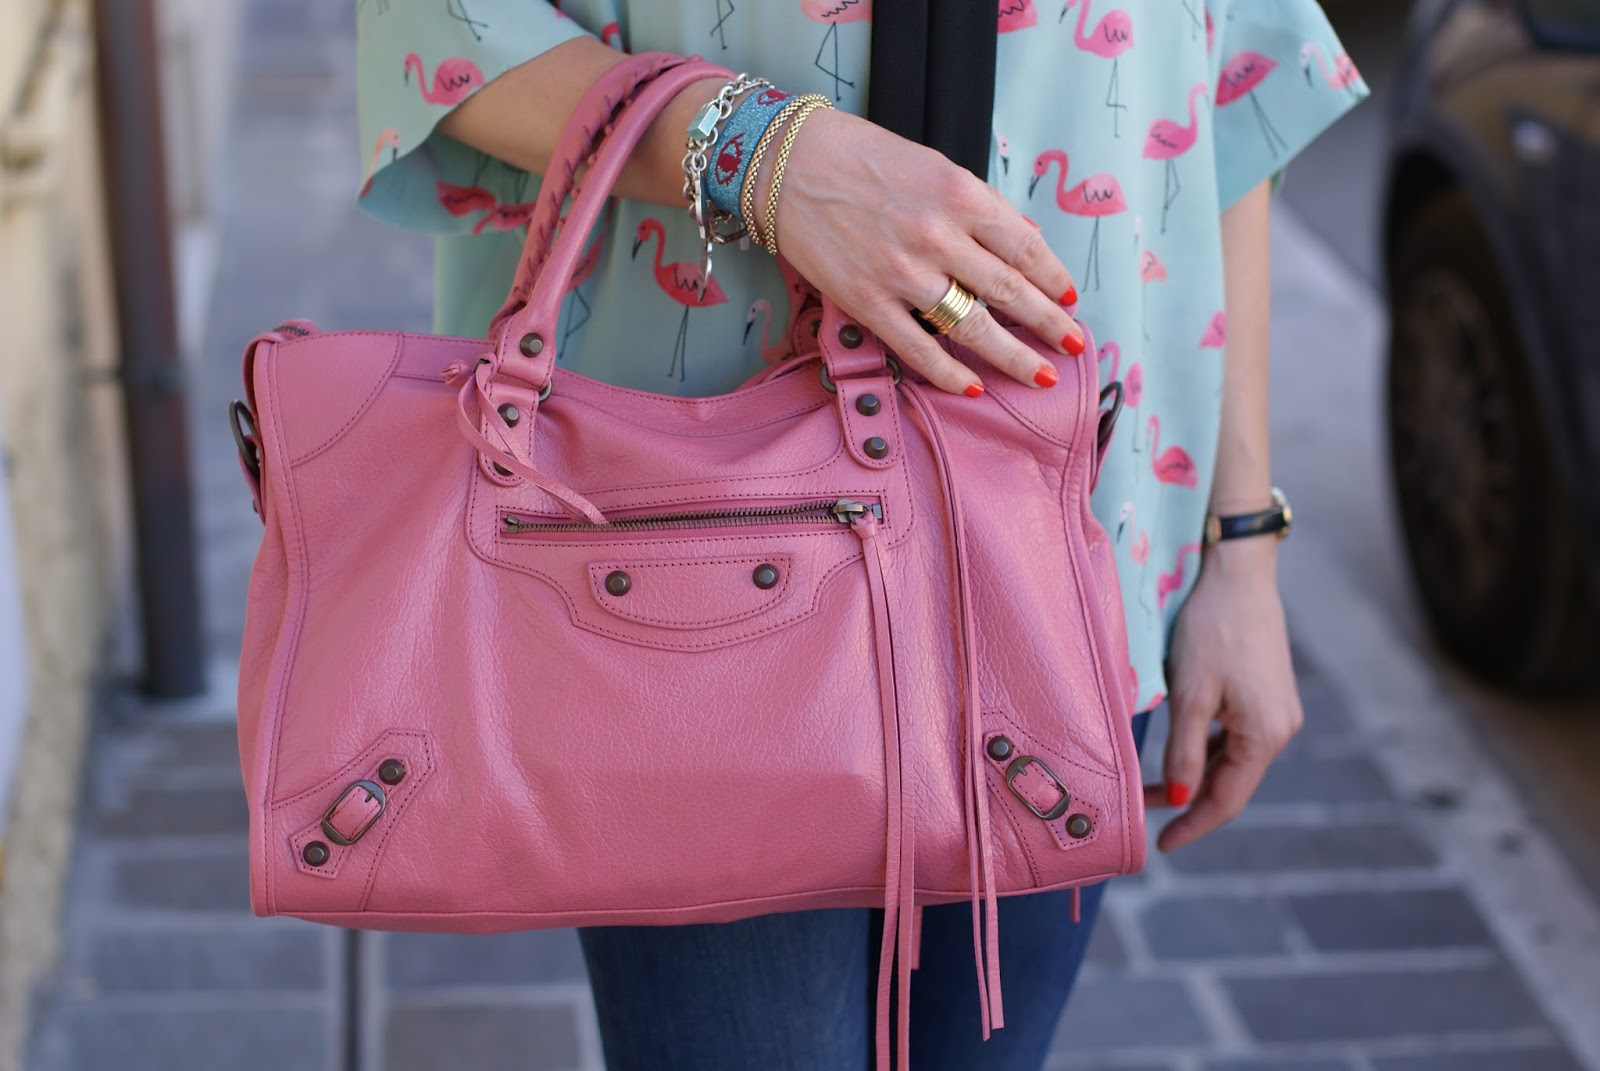 Balenciaga City bag in rose orthensia on Fashion and Cookies fashion blog, fashion blogger style